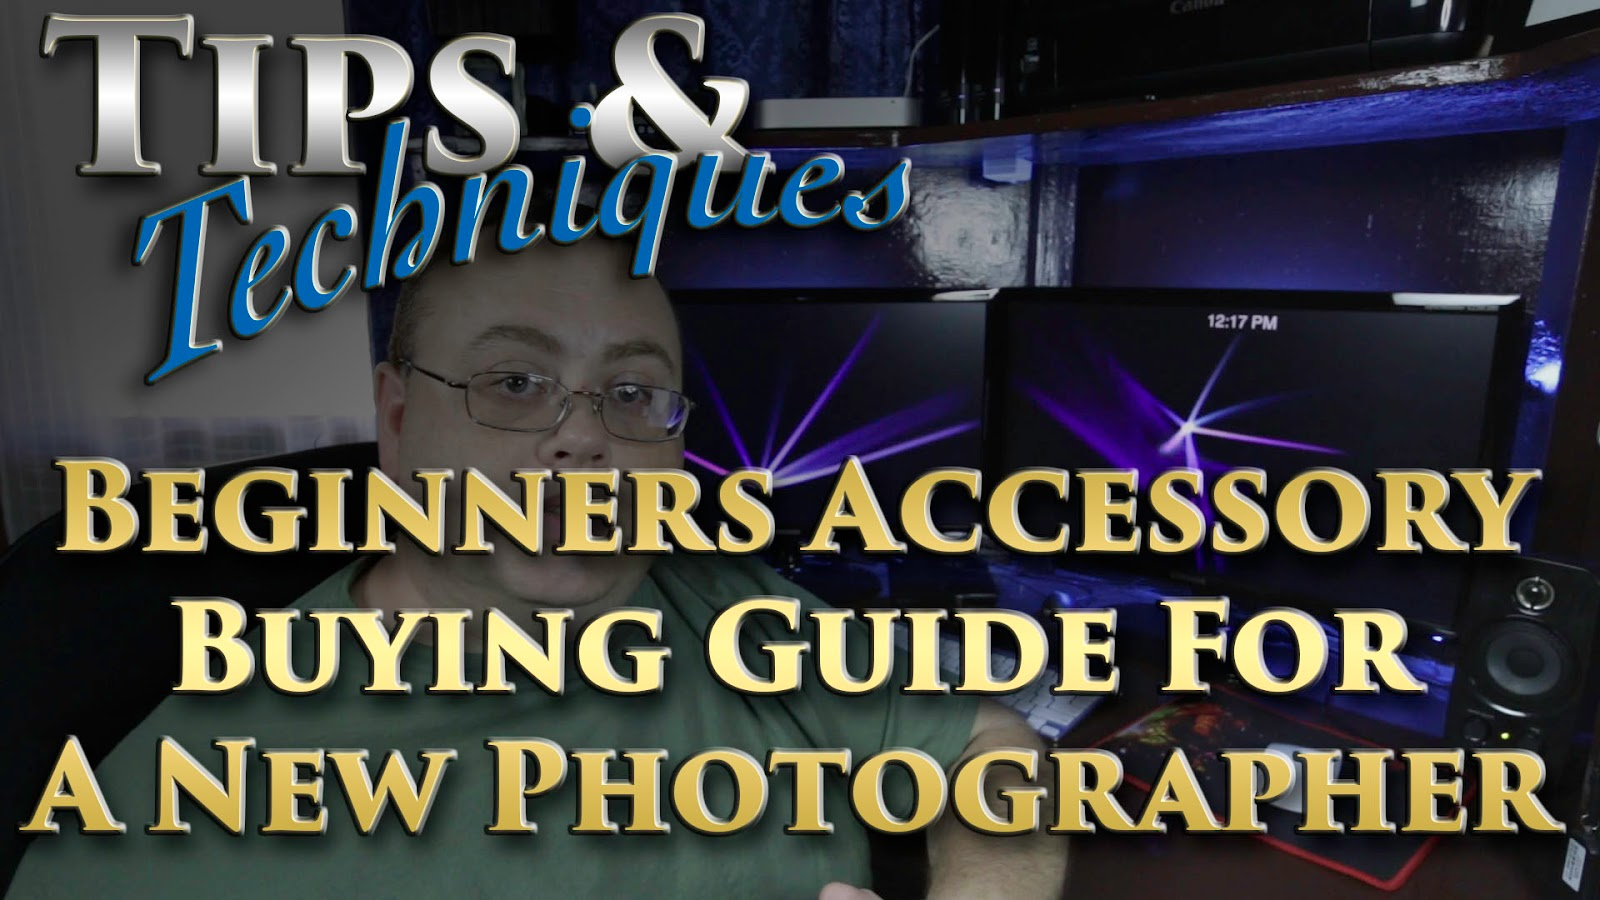 Beginners Accessory Buying Guide For A New Photographer